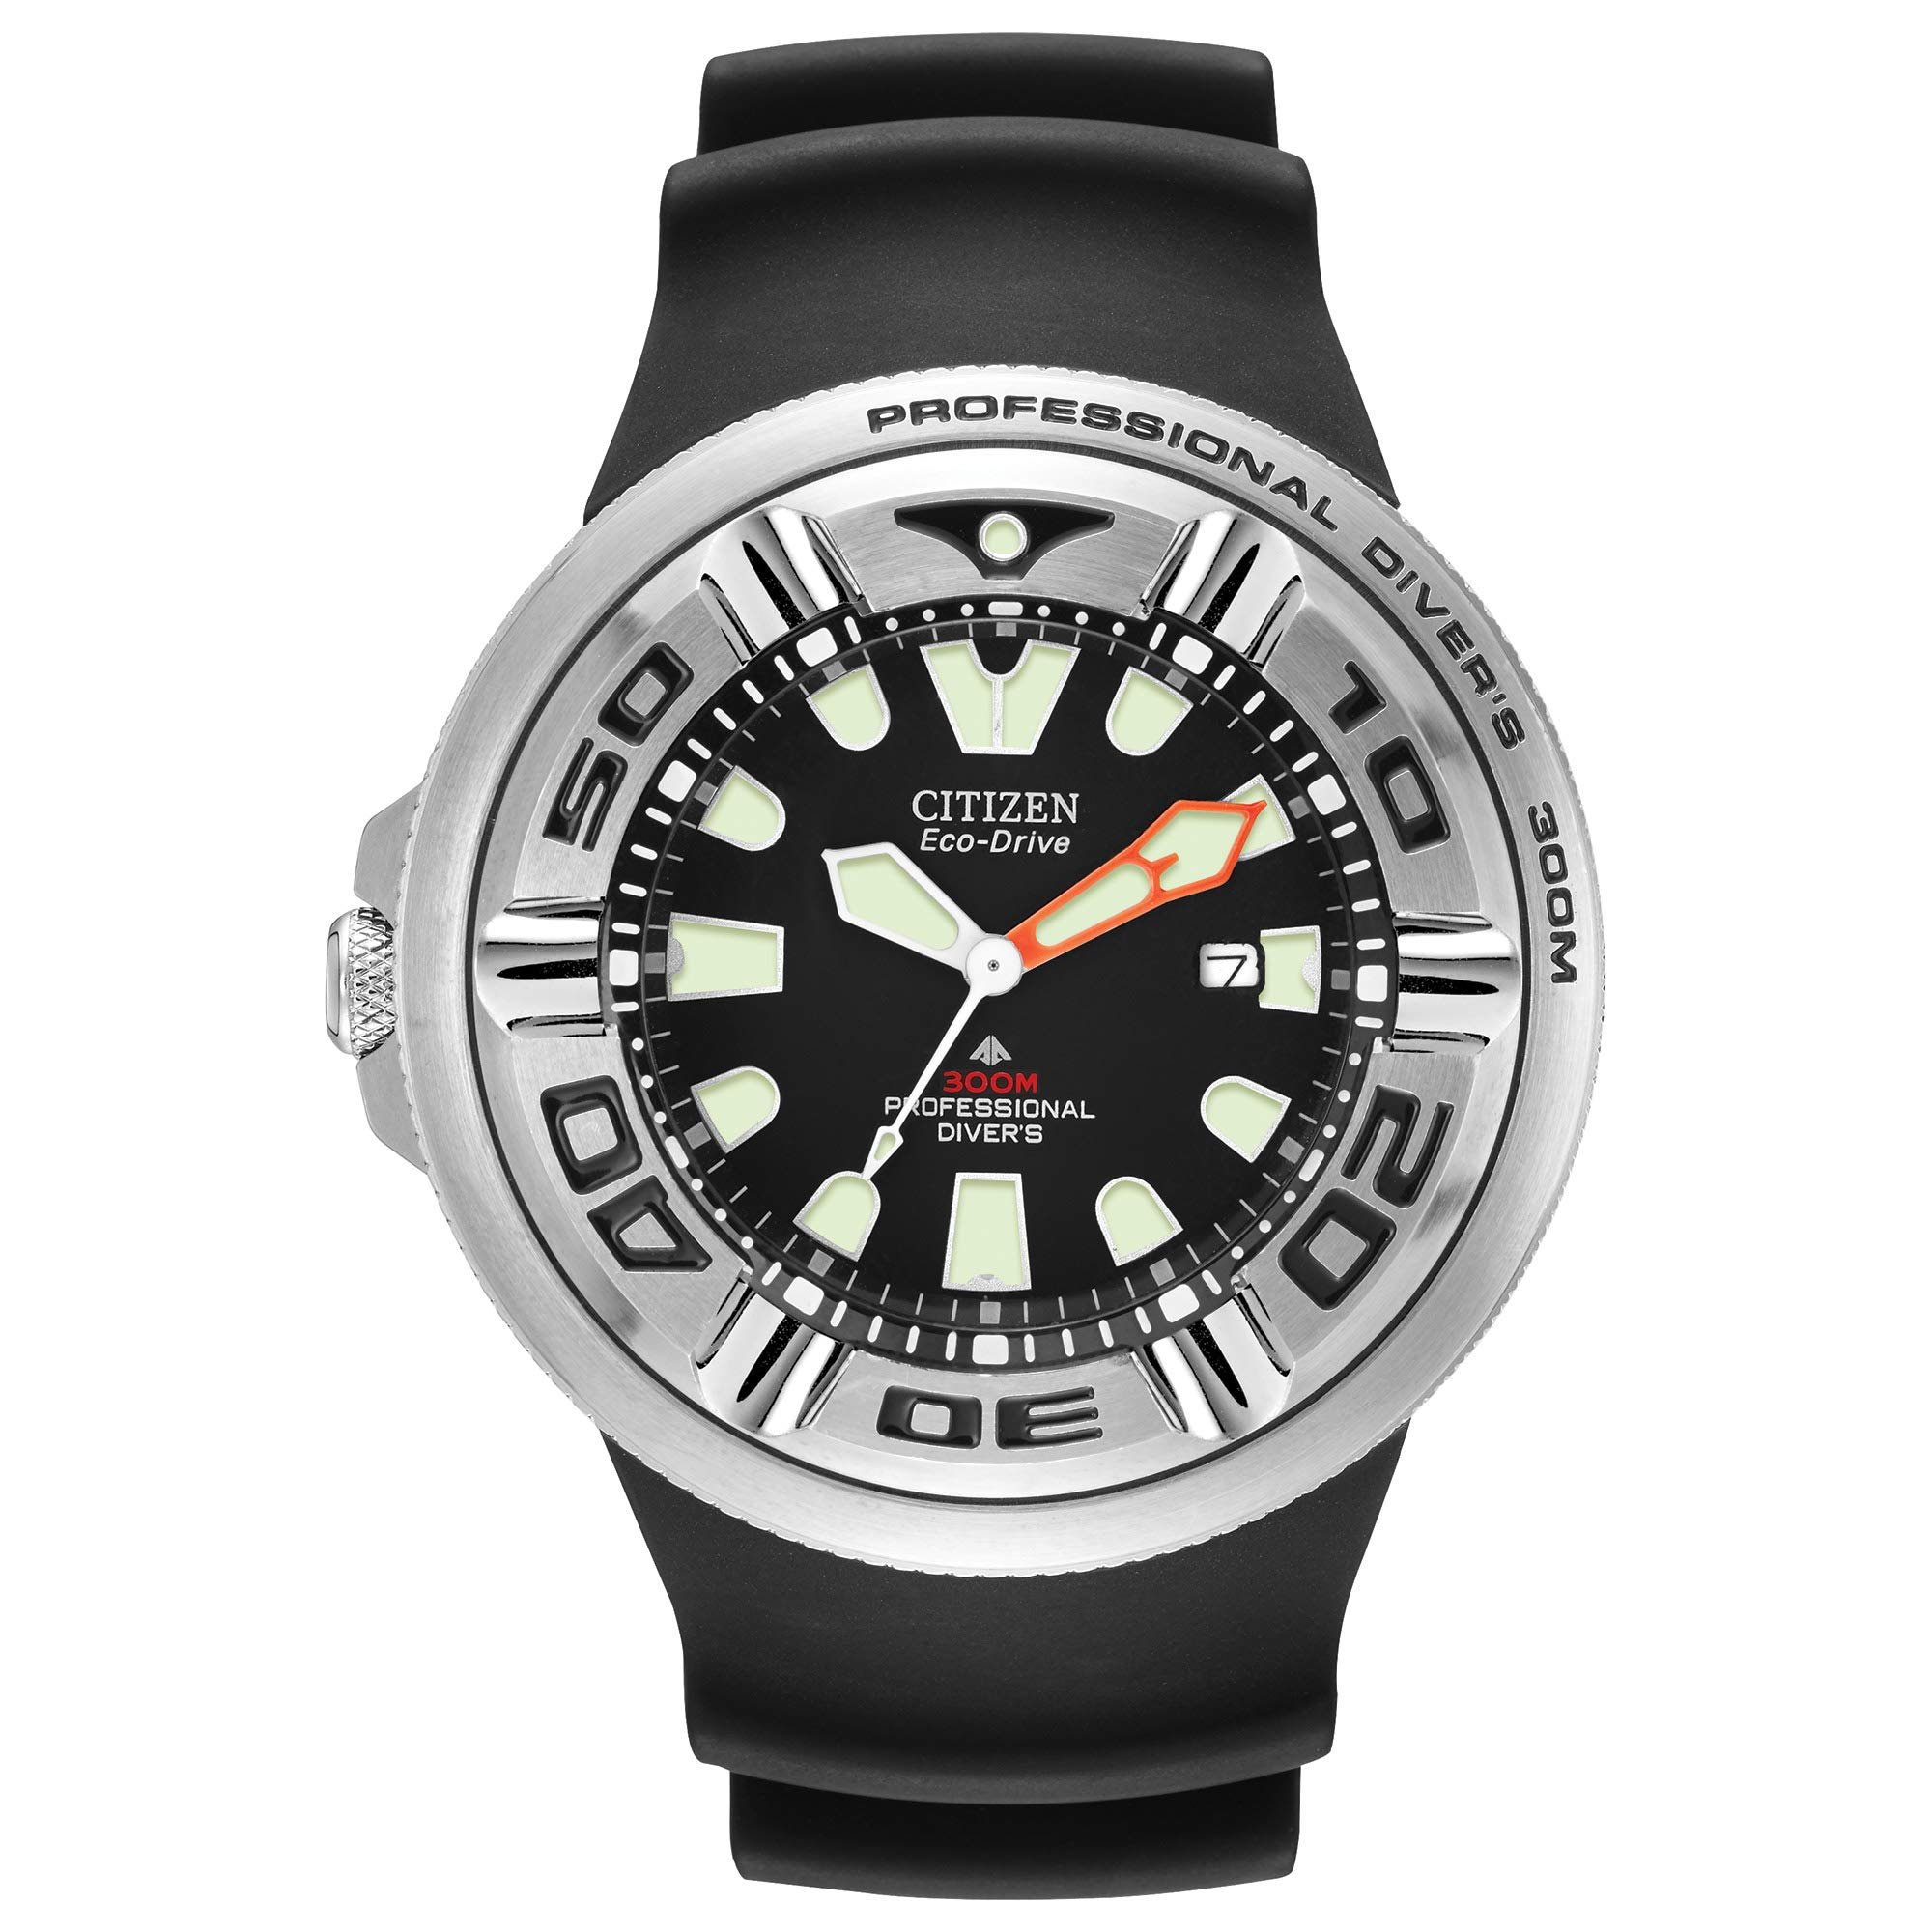 Citizen Men's Eco-Drive Promaster Diver Watch with Date, BJ8050-08E by Citizen